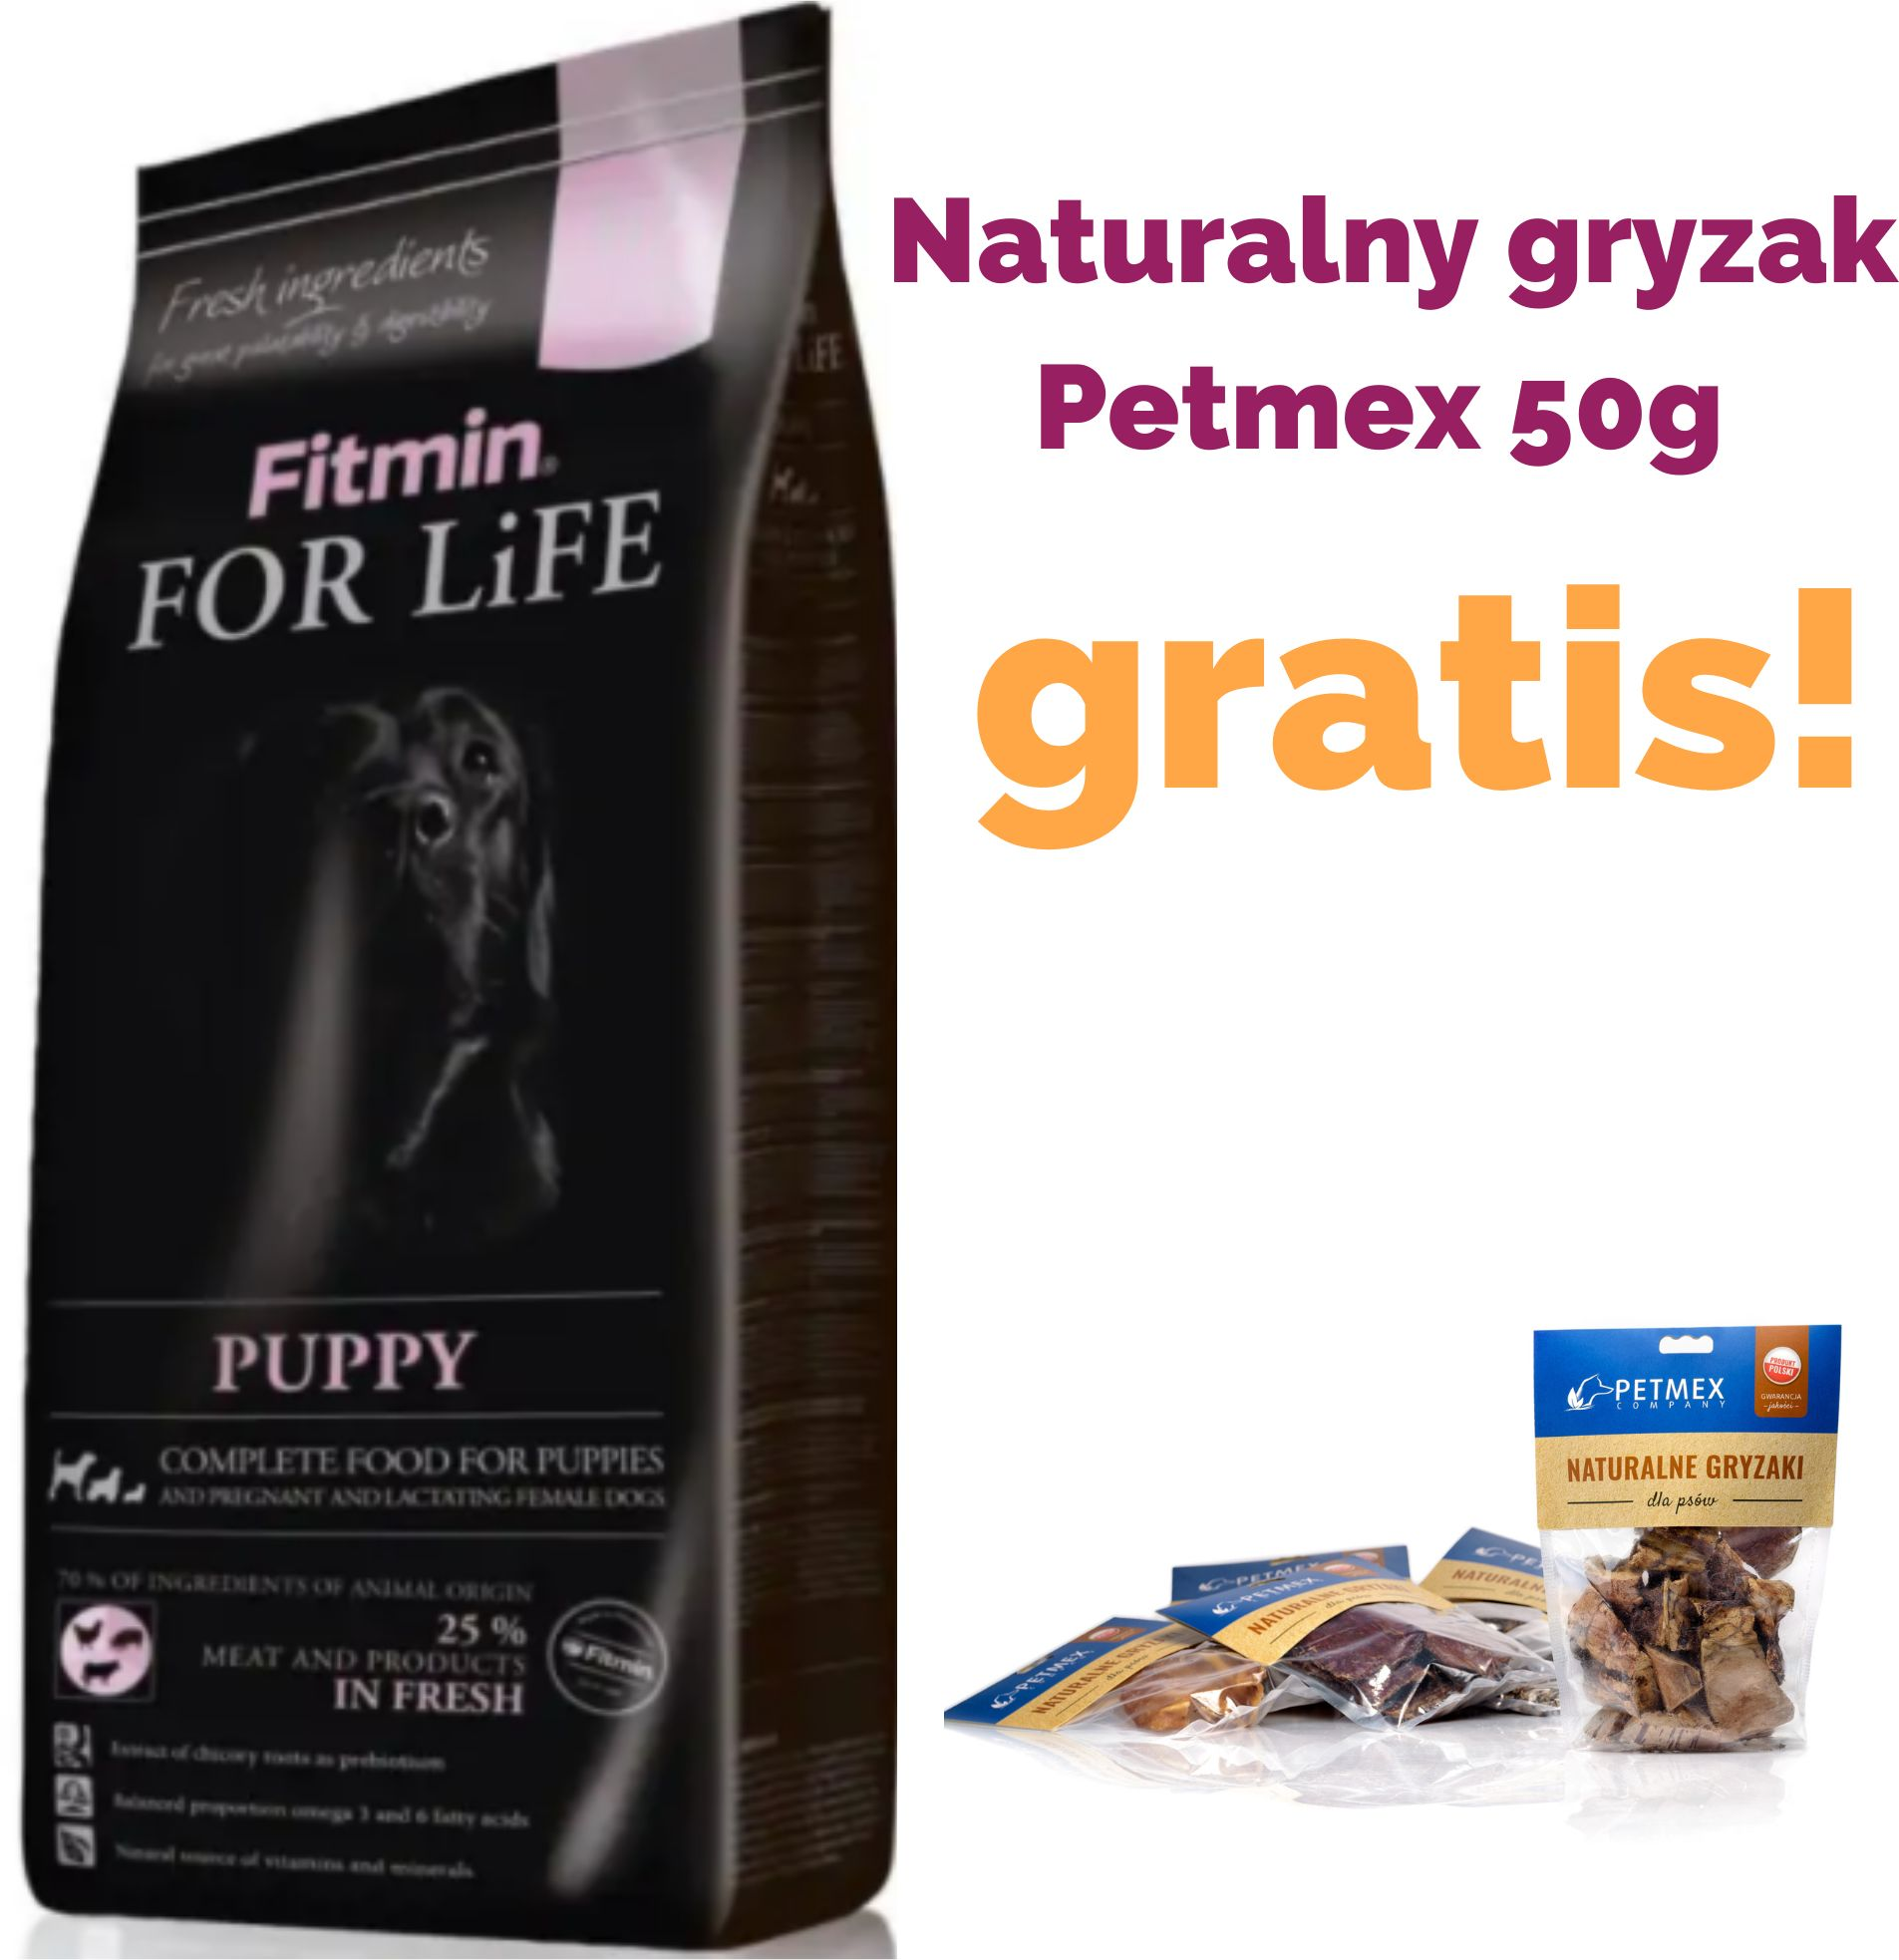 FITMIN - For life puppy pies 15kg + Gratis!